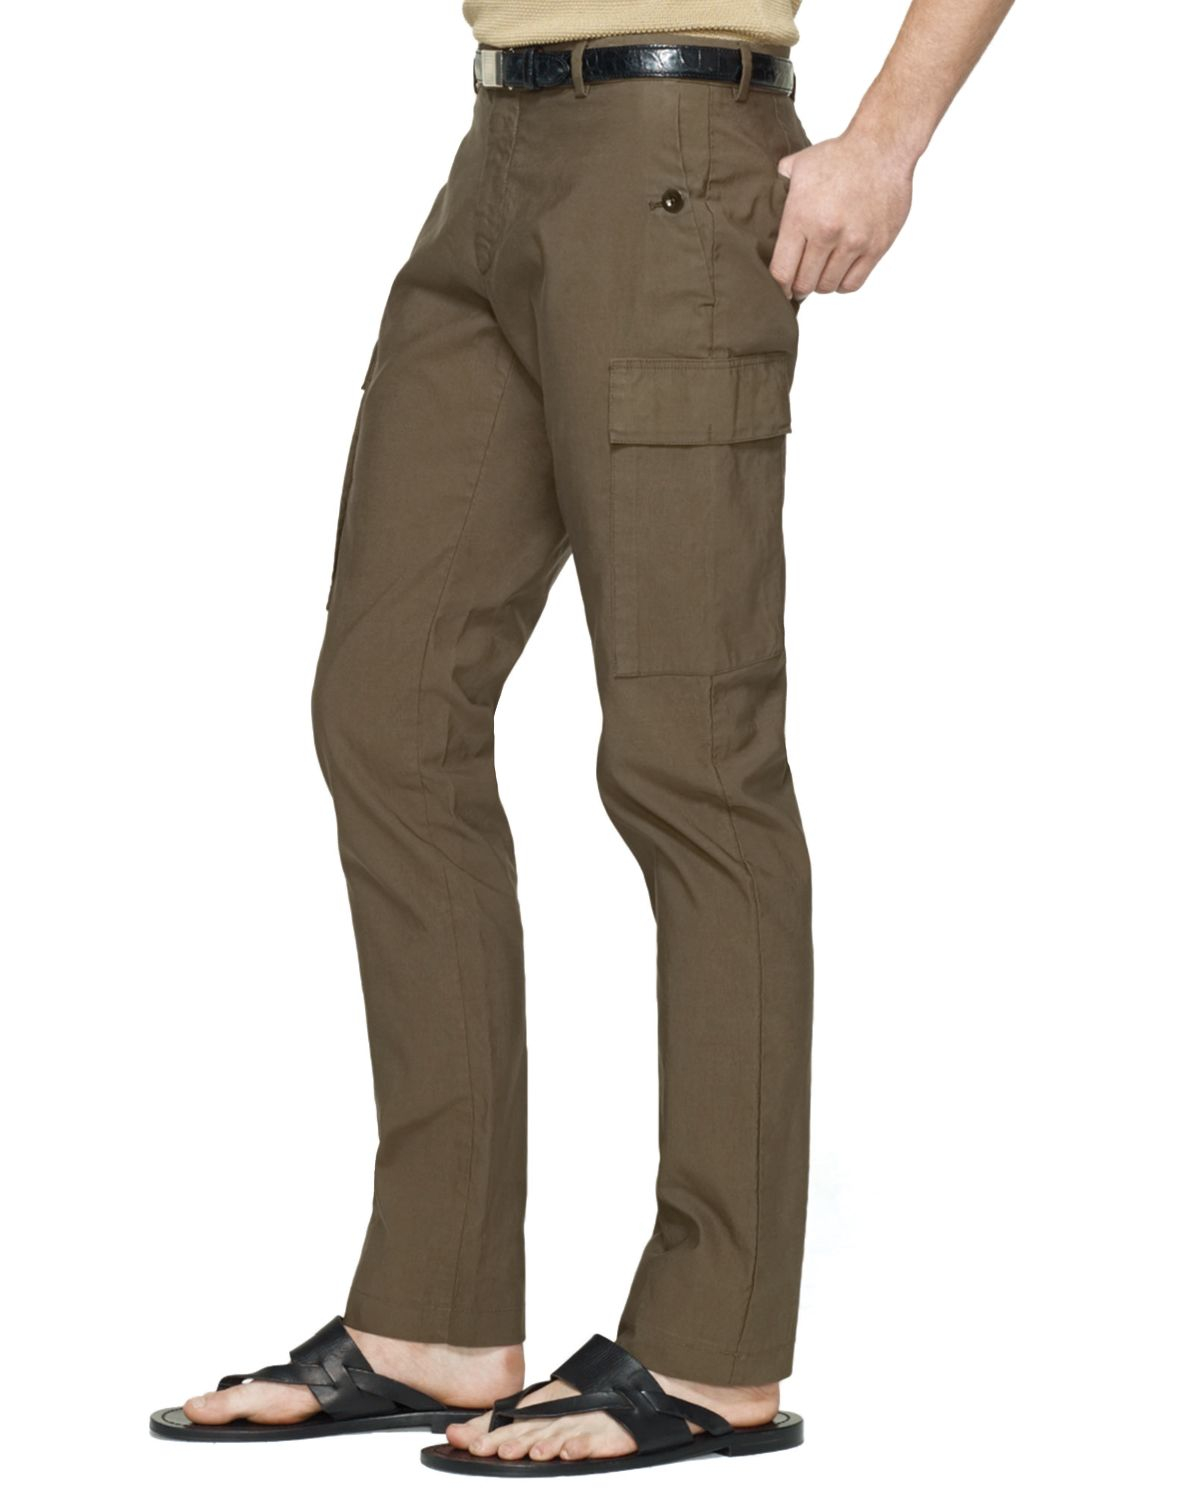 Ralph lauren Black Label Stretch Twill Cargo Pants Slim Fit in ...